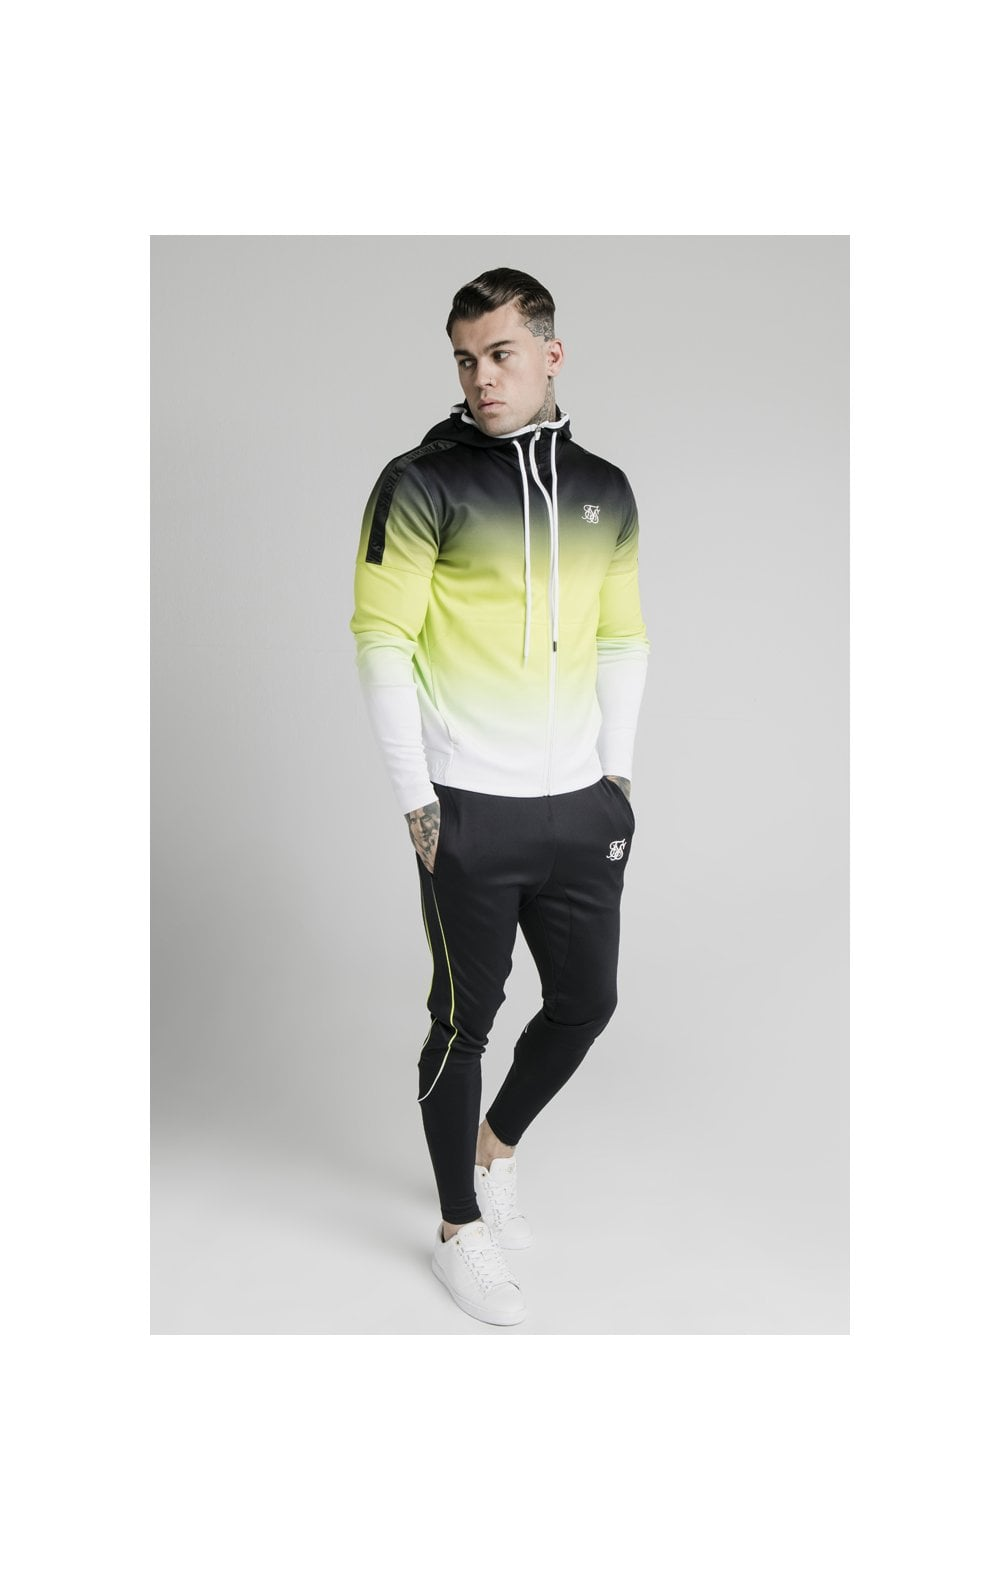 SikSilk Tri-Fade Agility Zip Through Hoodie - Black, Fluro & White (2)